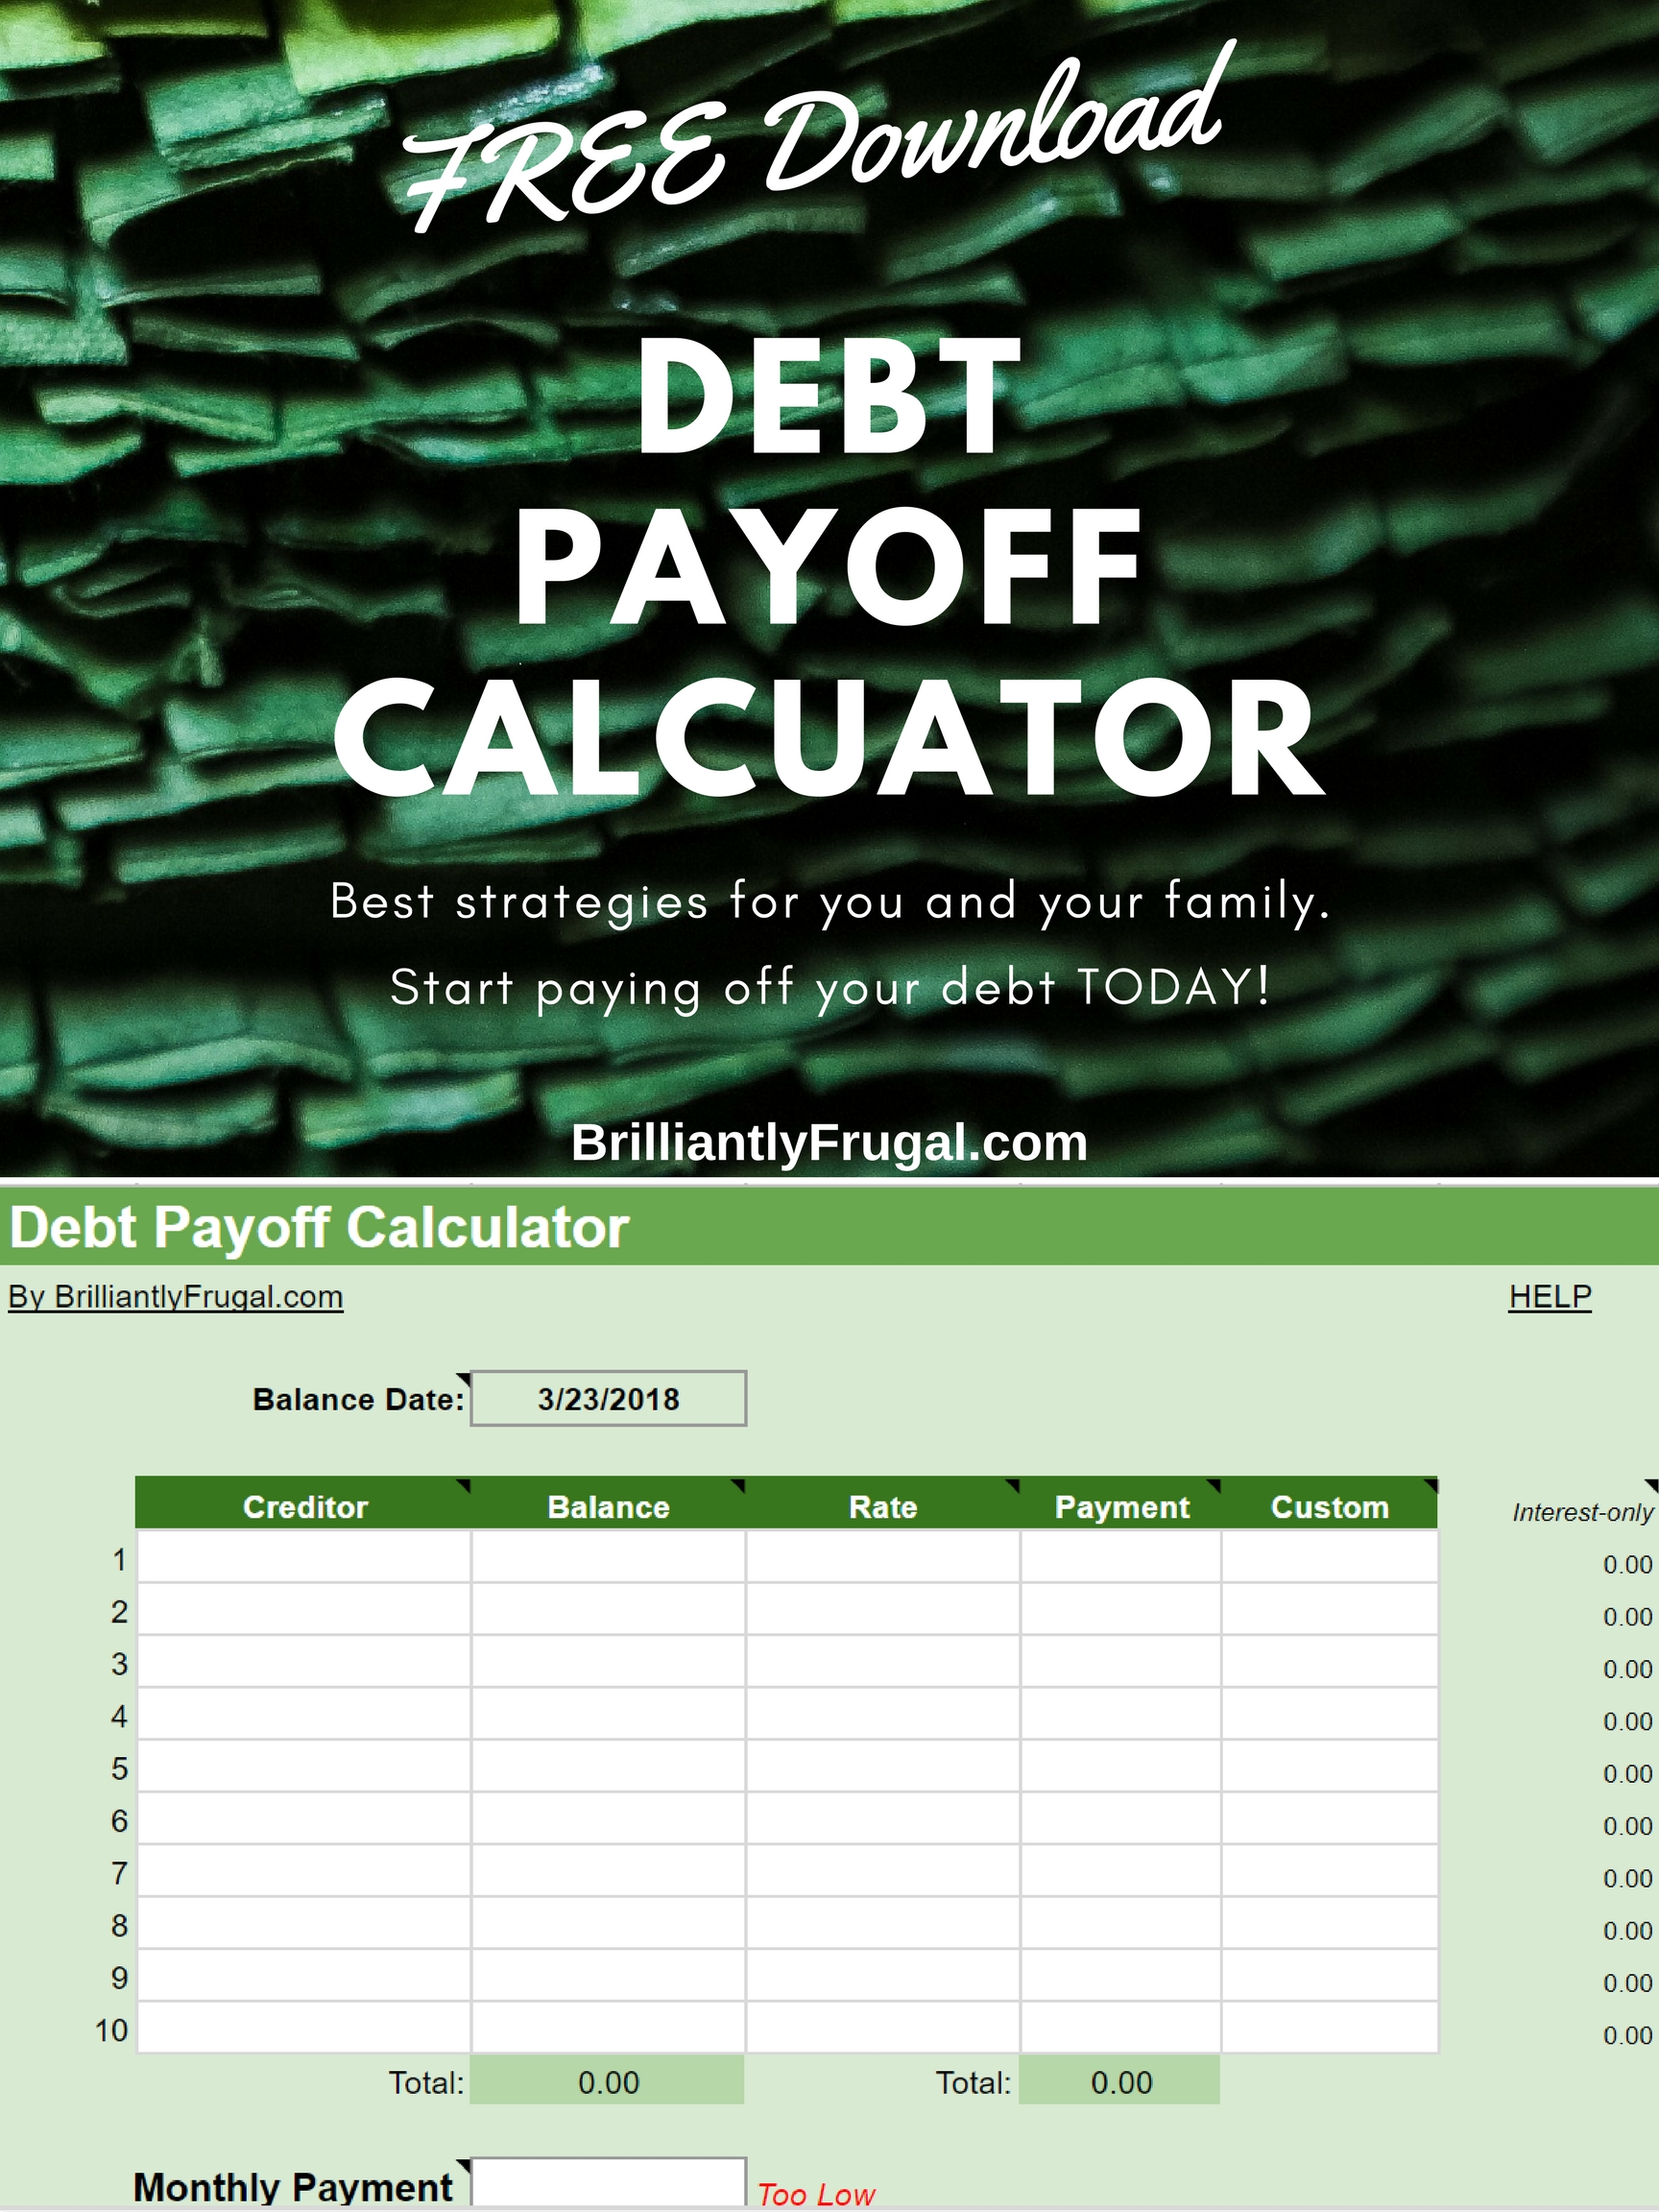 brilliantly frugal debt payoff calculator free download